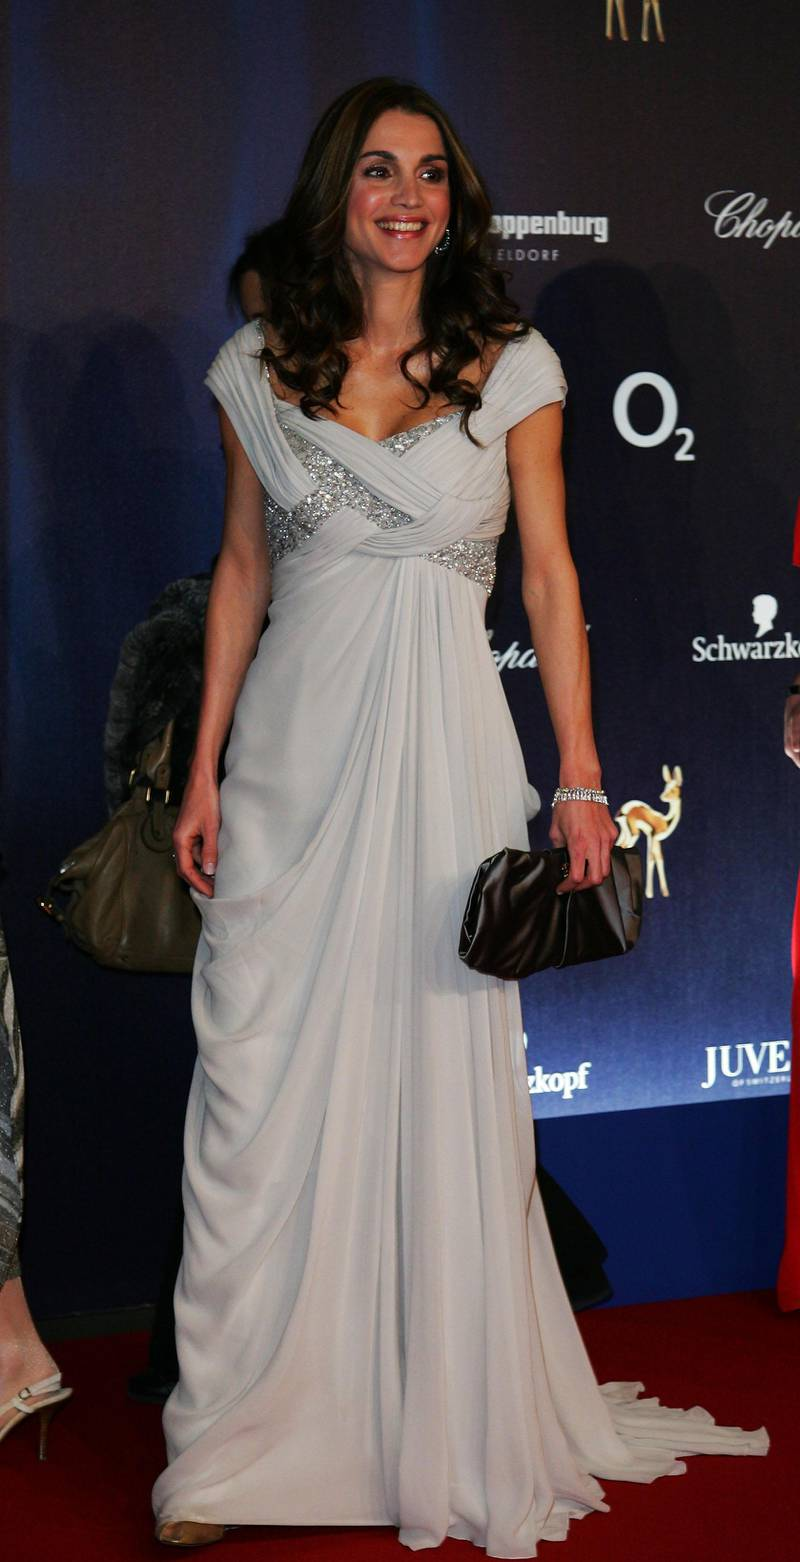 DUESSELDORF, GERMANY - NOVEMBER 29:  Queen Rania of Jordan attends the annual Bambi Awards 2007 on November 29, 2007 in Duesseldorf, Germany.  (Photo by Andreas Rentz/Getty Images)